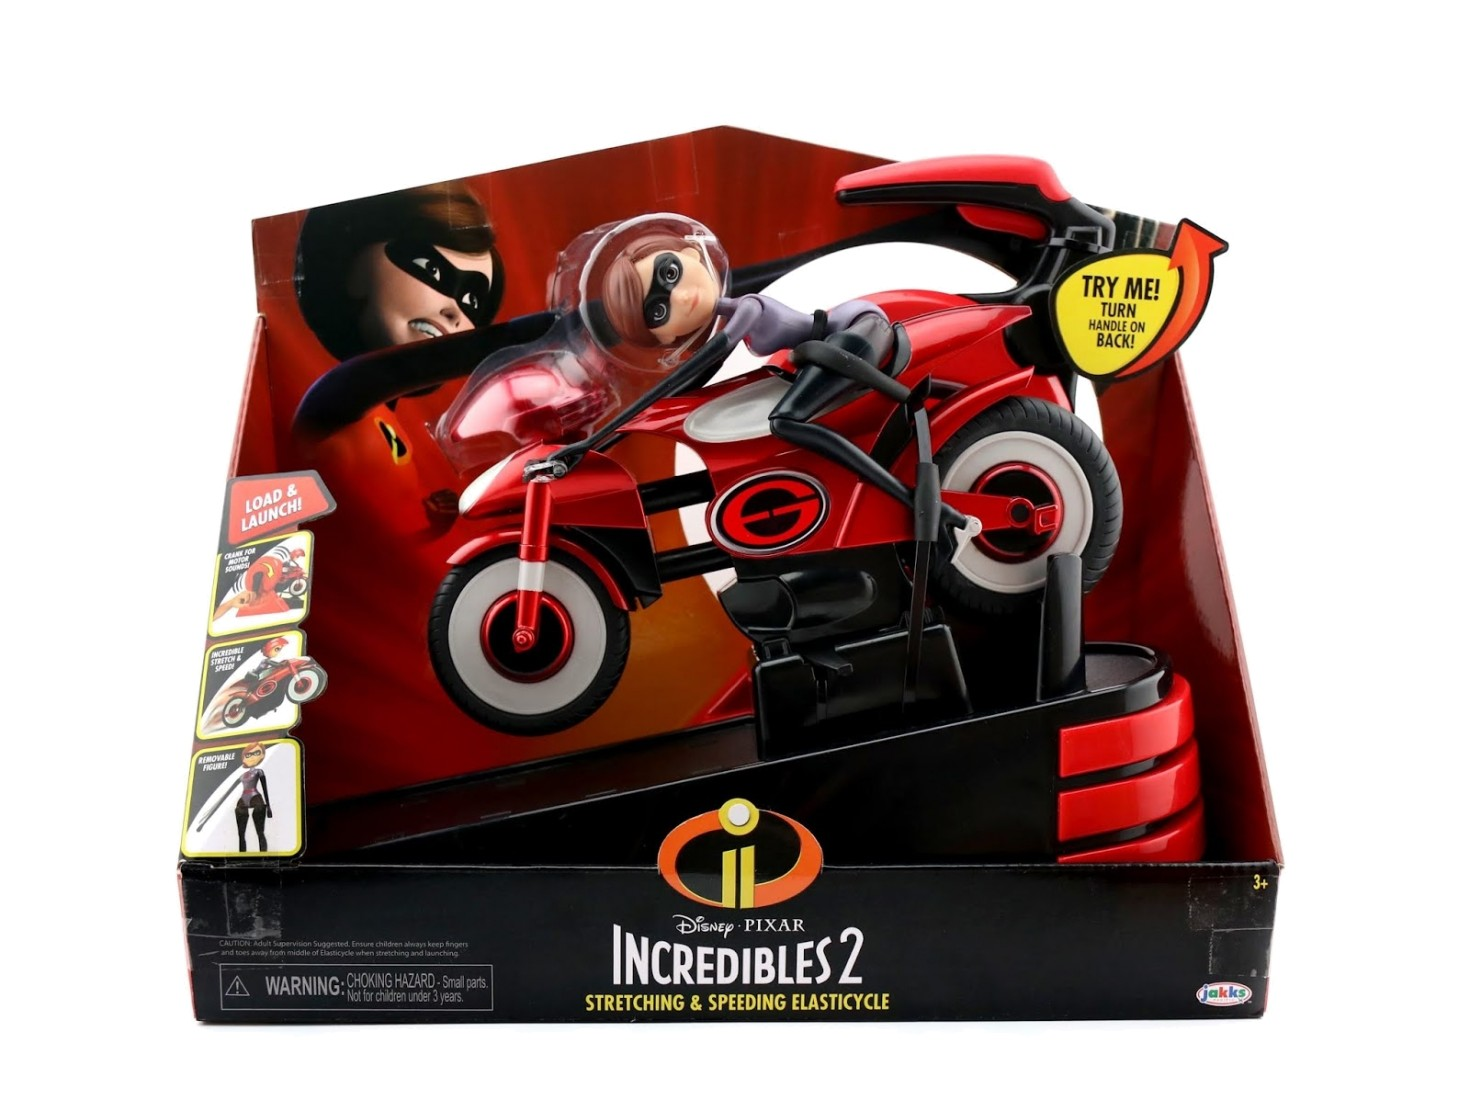 INCREDIBLES 2 STRETCHING & SPEEDING ELASTICYCLE